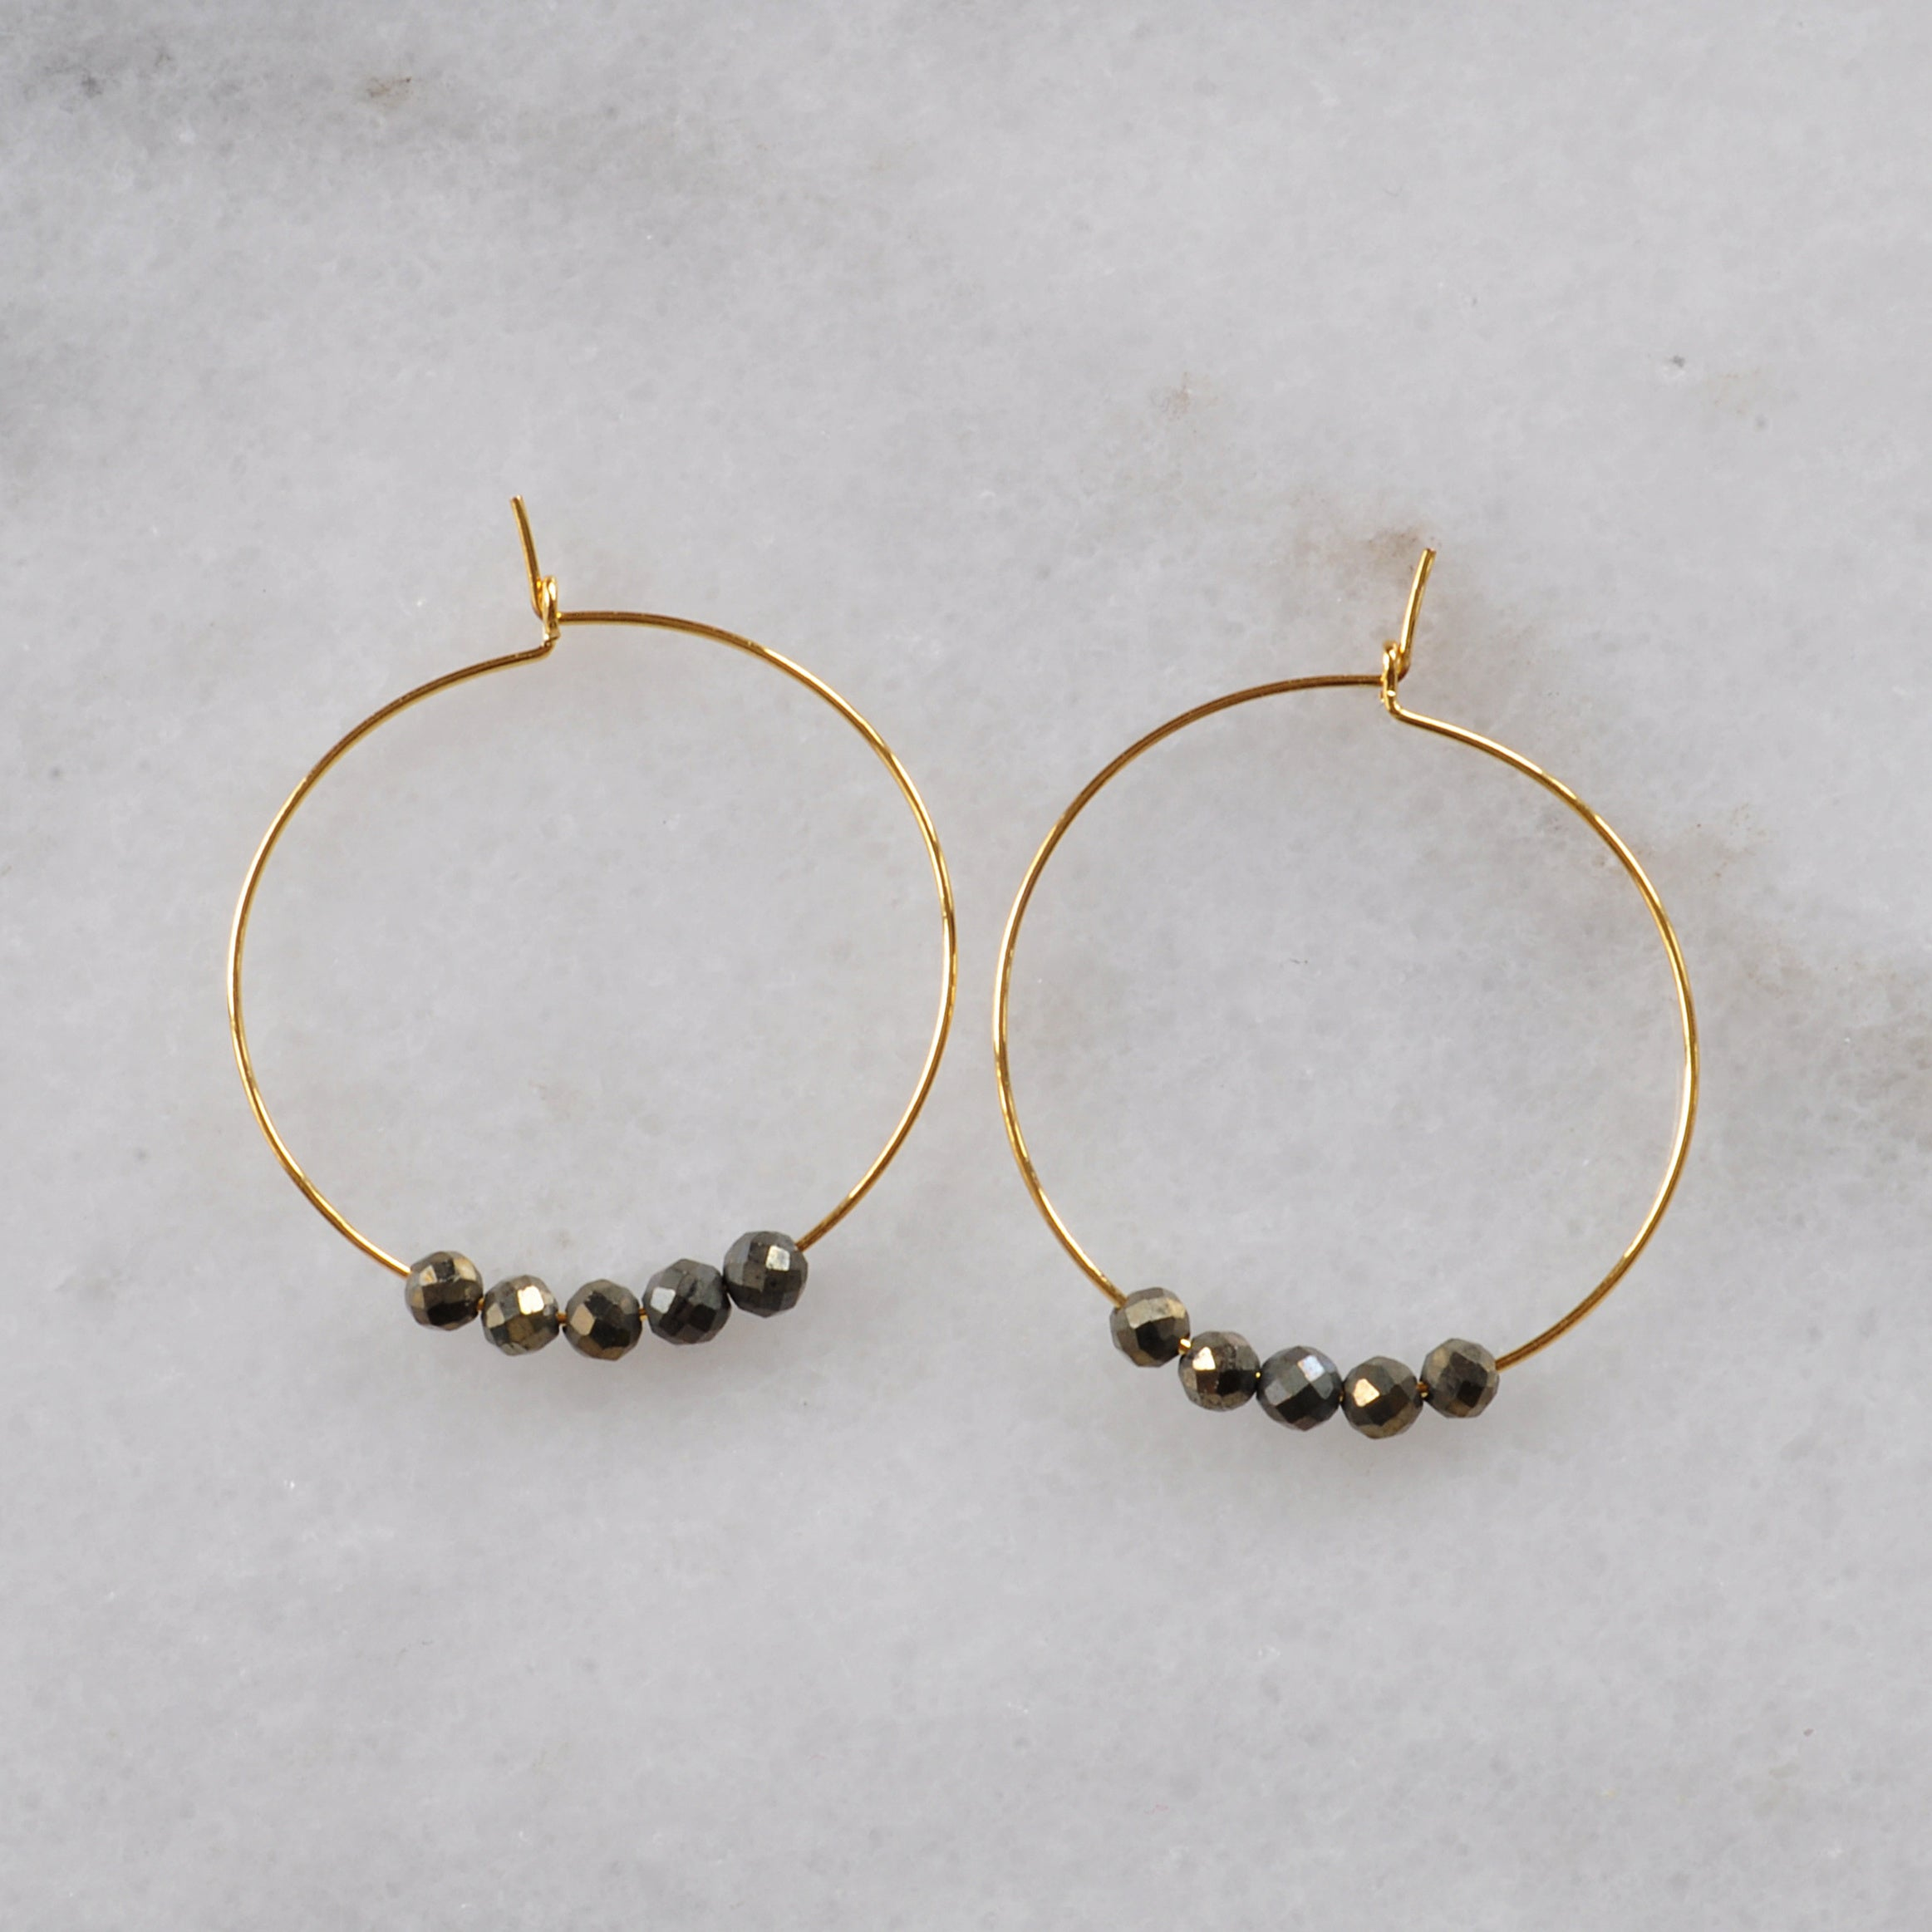 Libby & Smee pyrite gold plated hoops